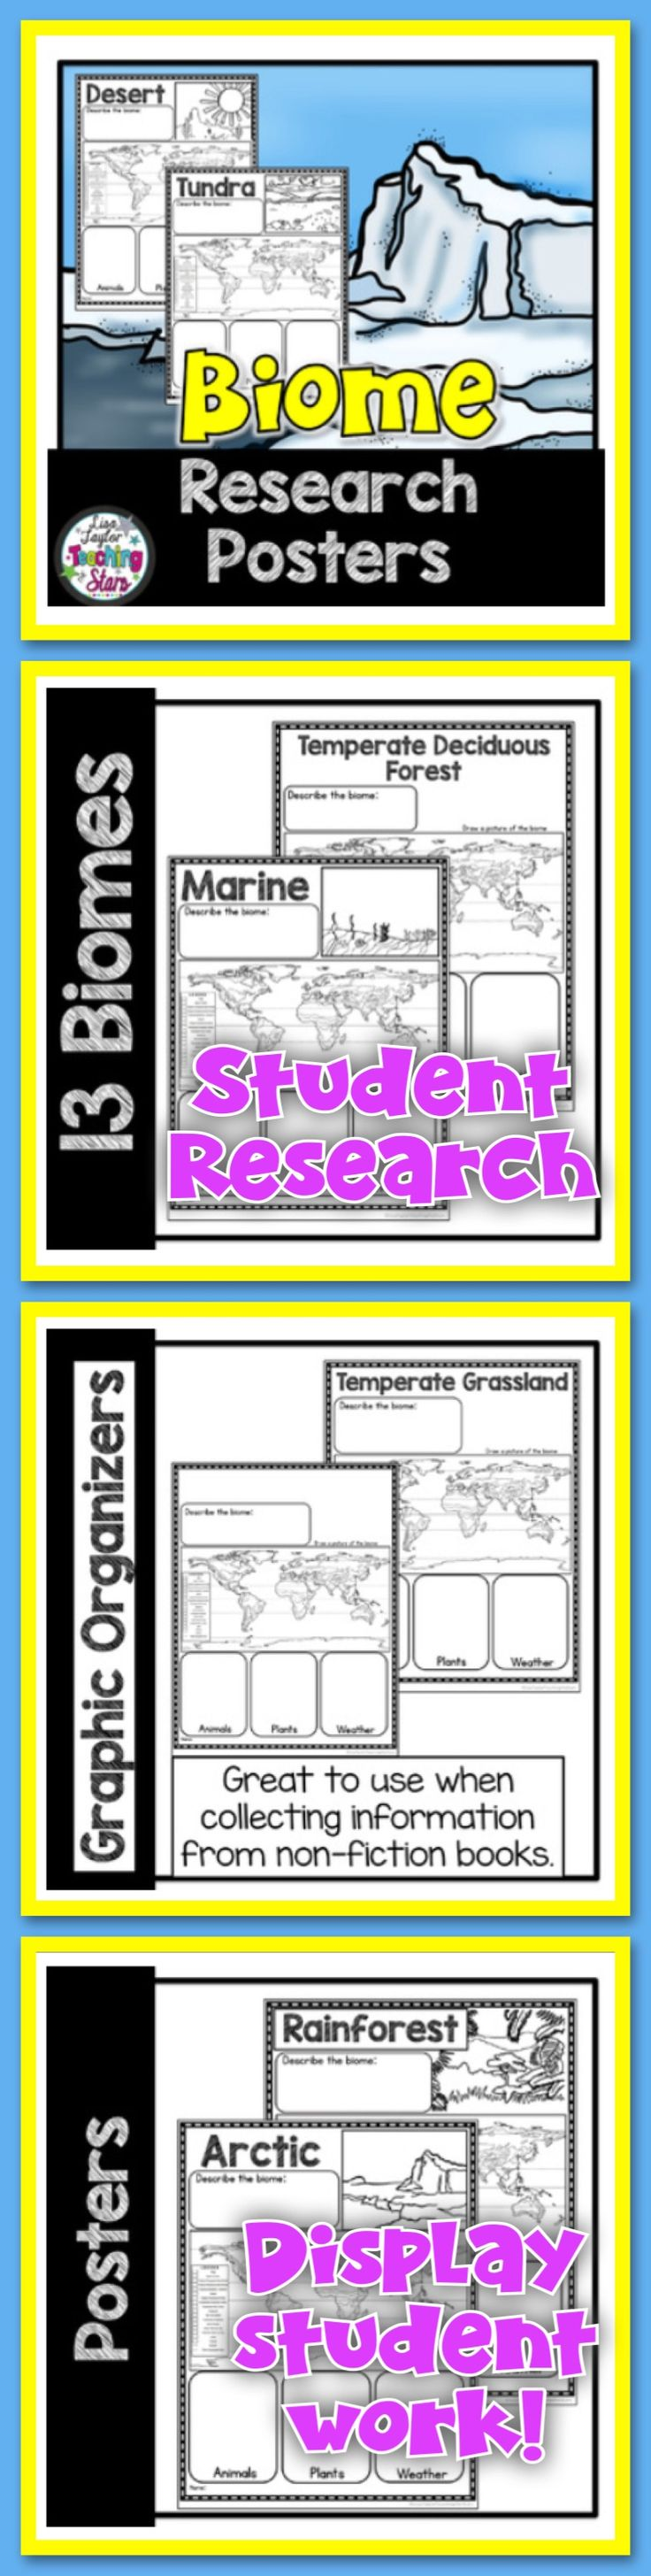 Biome Research Posters will provide graphic organizers students can use while researching about the different biomes. The organizers will help students make a final piece of informational writing using the information they have collected.   Biomes Included:  Desert Tundra Savanna Rainforest Arctic Temperate Deciduous Forest Marine Temperate Grasslands Chaparral Freshwater Taiga Coral Reef Alpine Blank Sheet